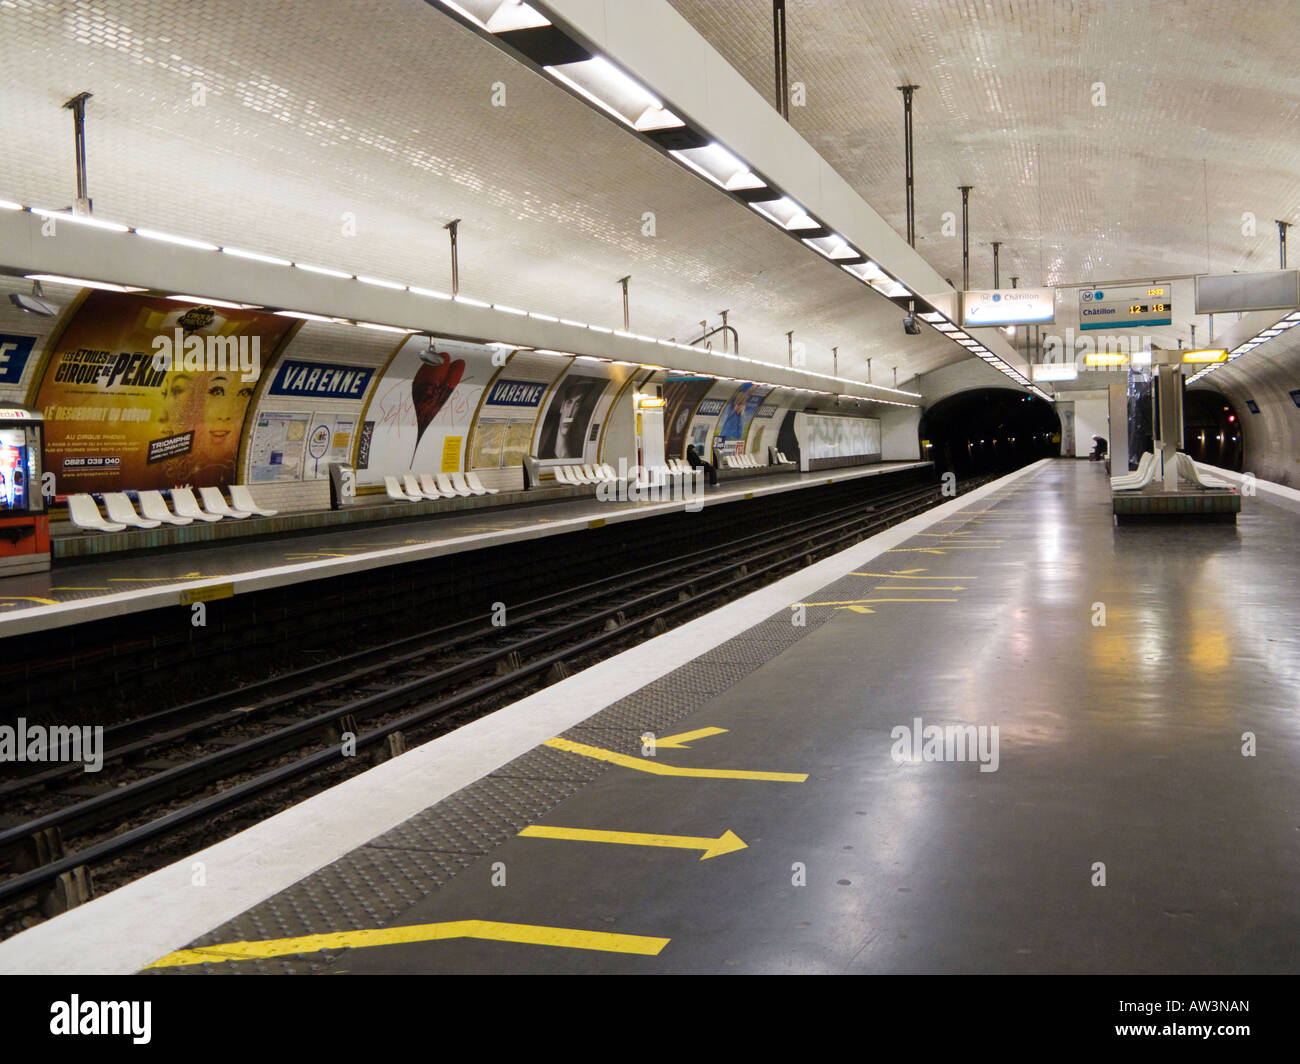 Paris Metro at Varenne, Paris, France, Europe - Stock Image